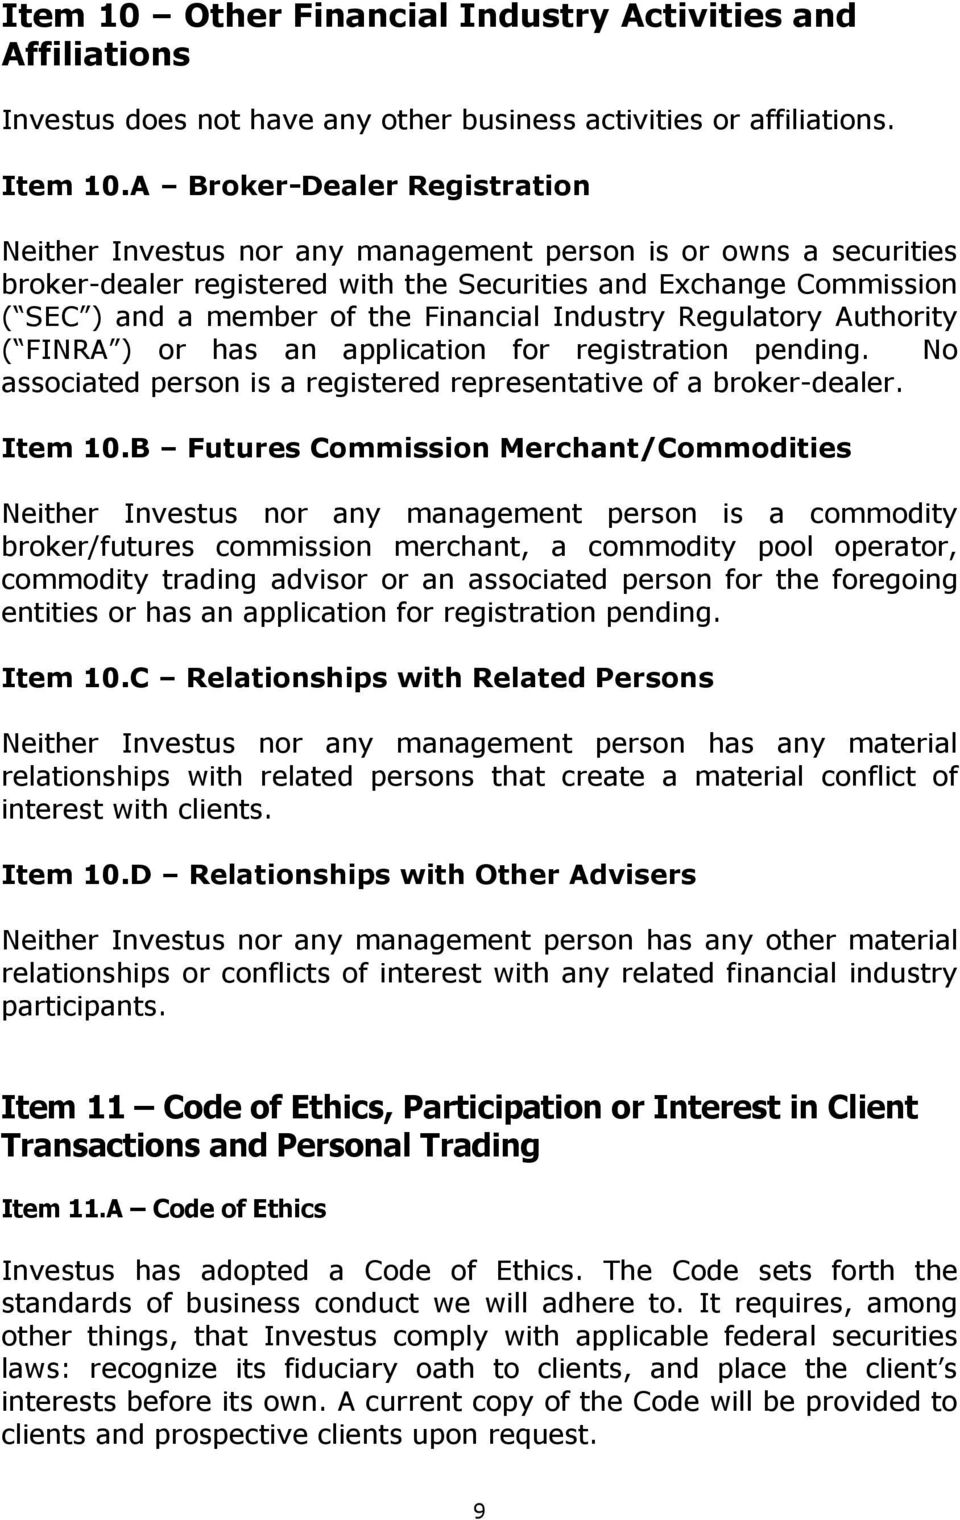 Financial Industry Regulatory Authority ( FINRA ) or has an application for registration pending. No associated person is a registered representative of a broker-dealer. Item 10.